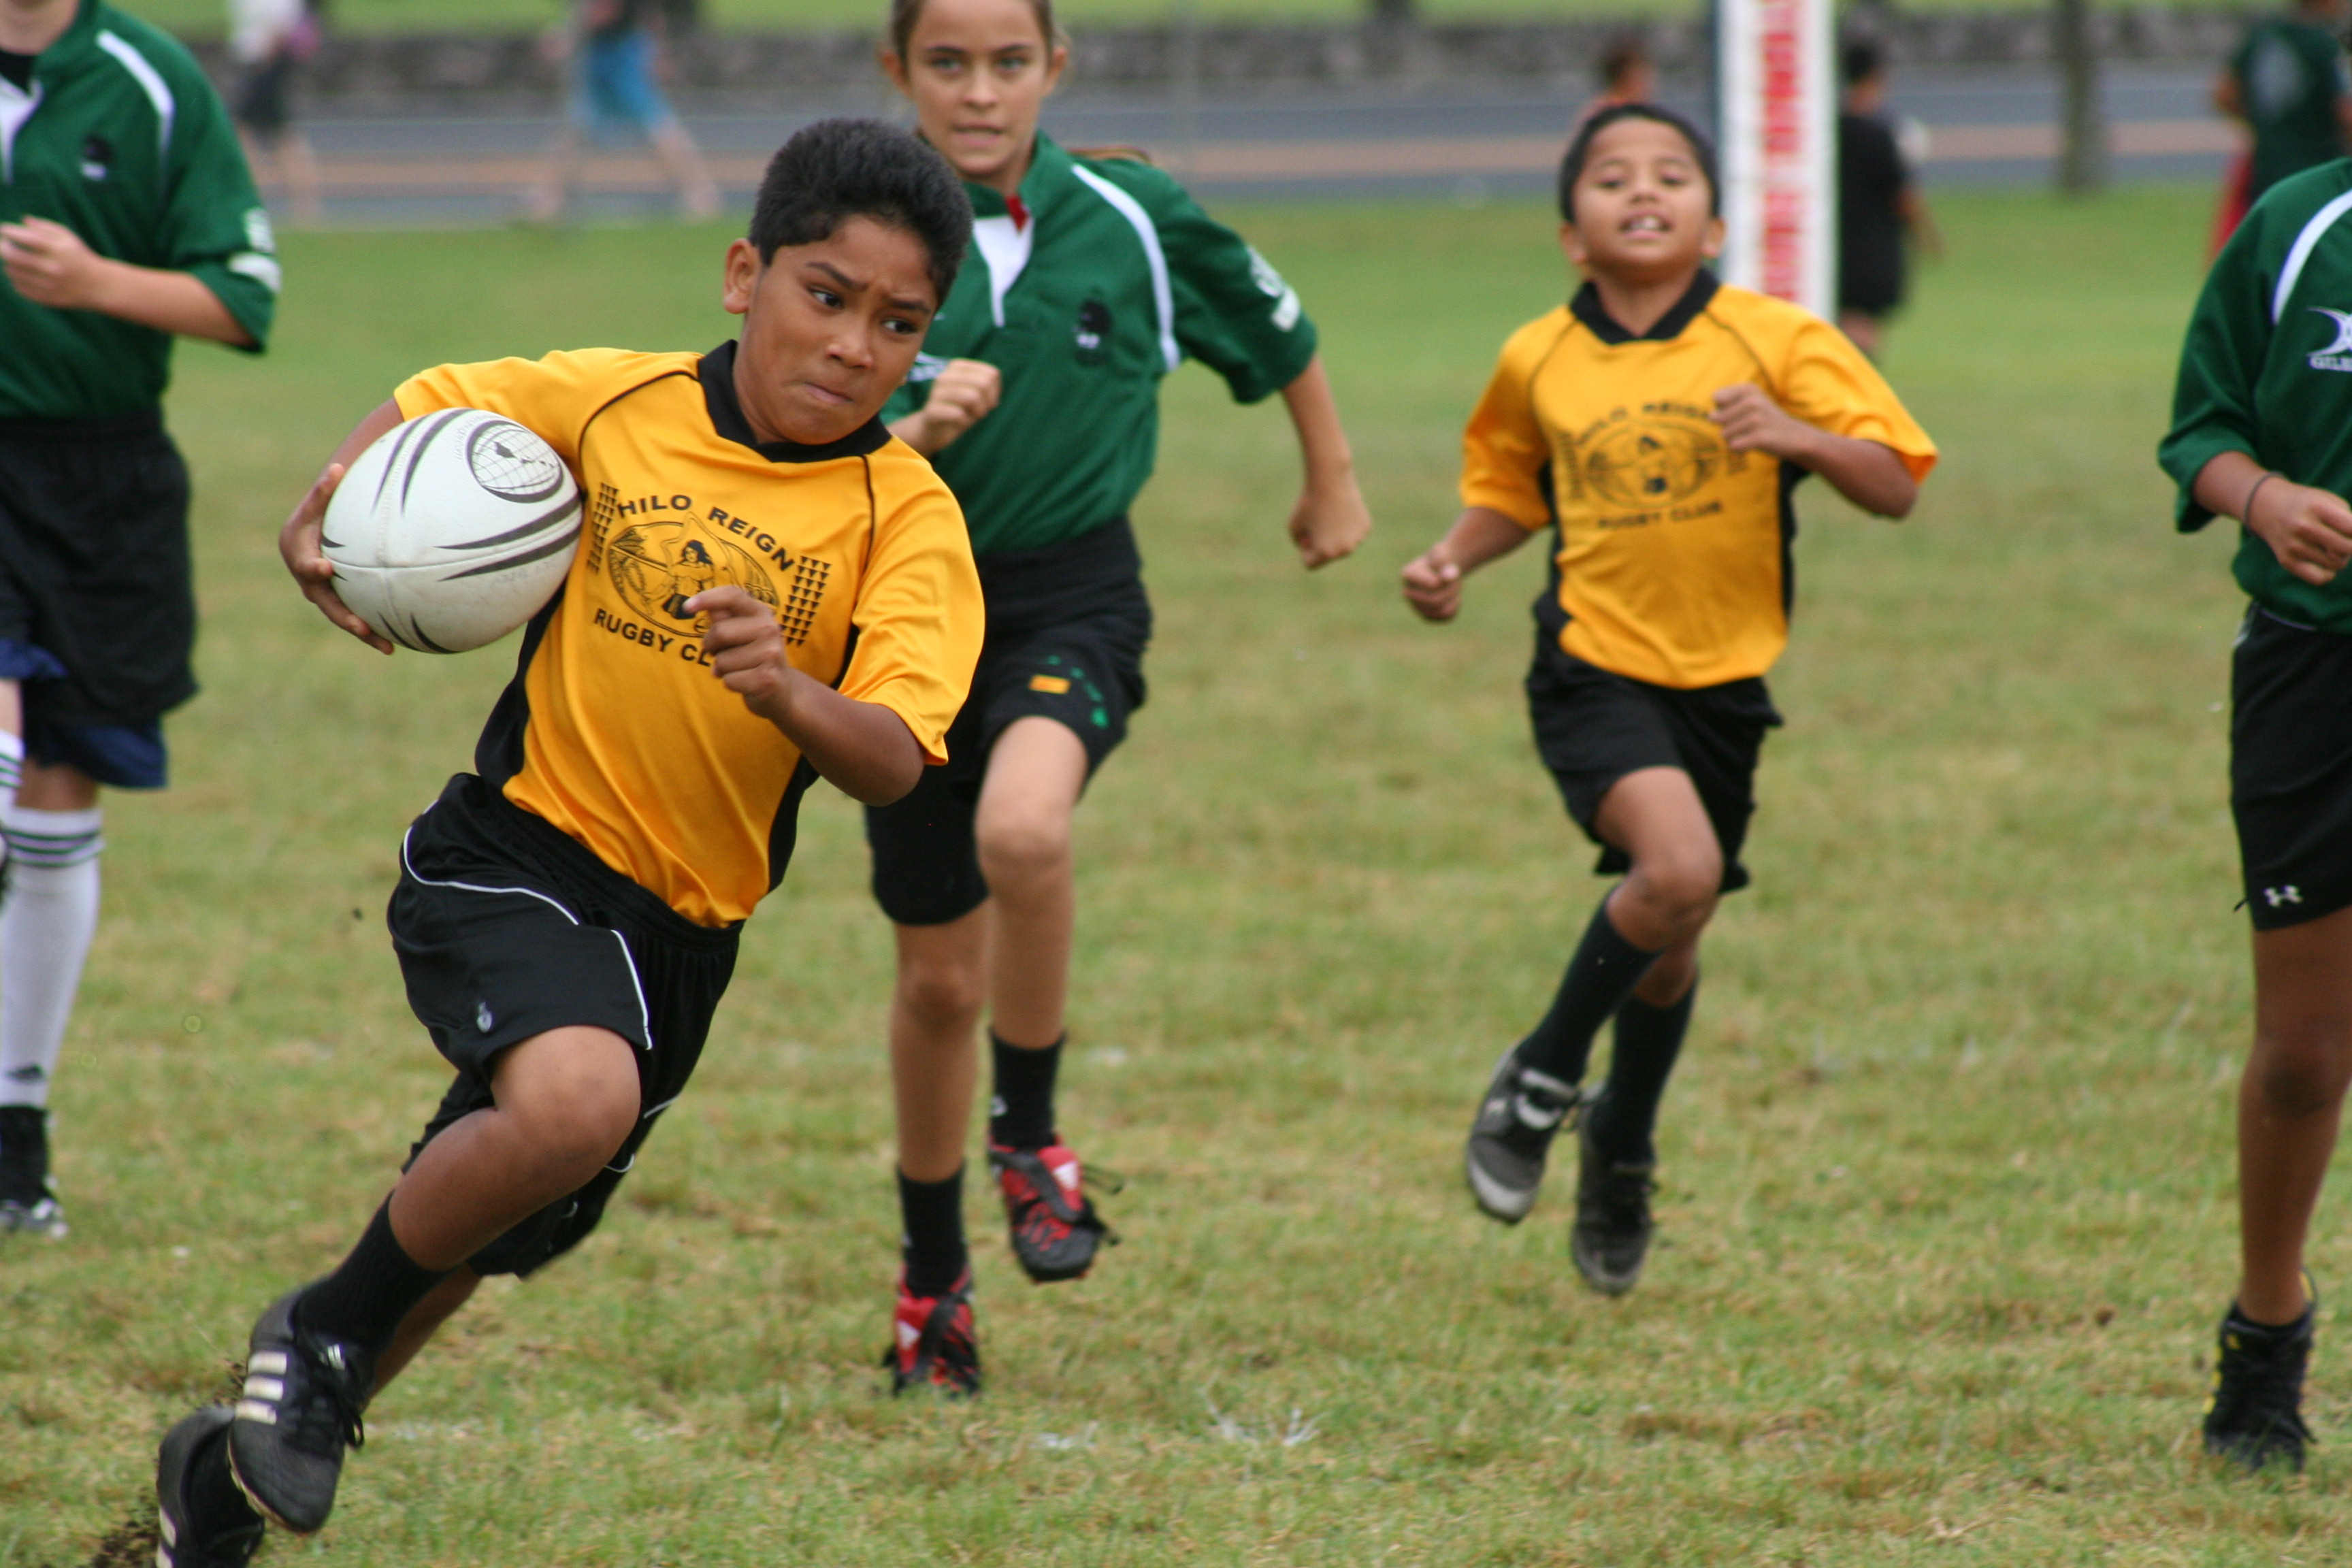 rugby under 13 rules for dating